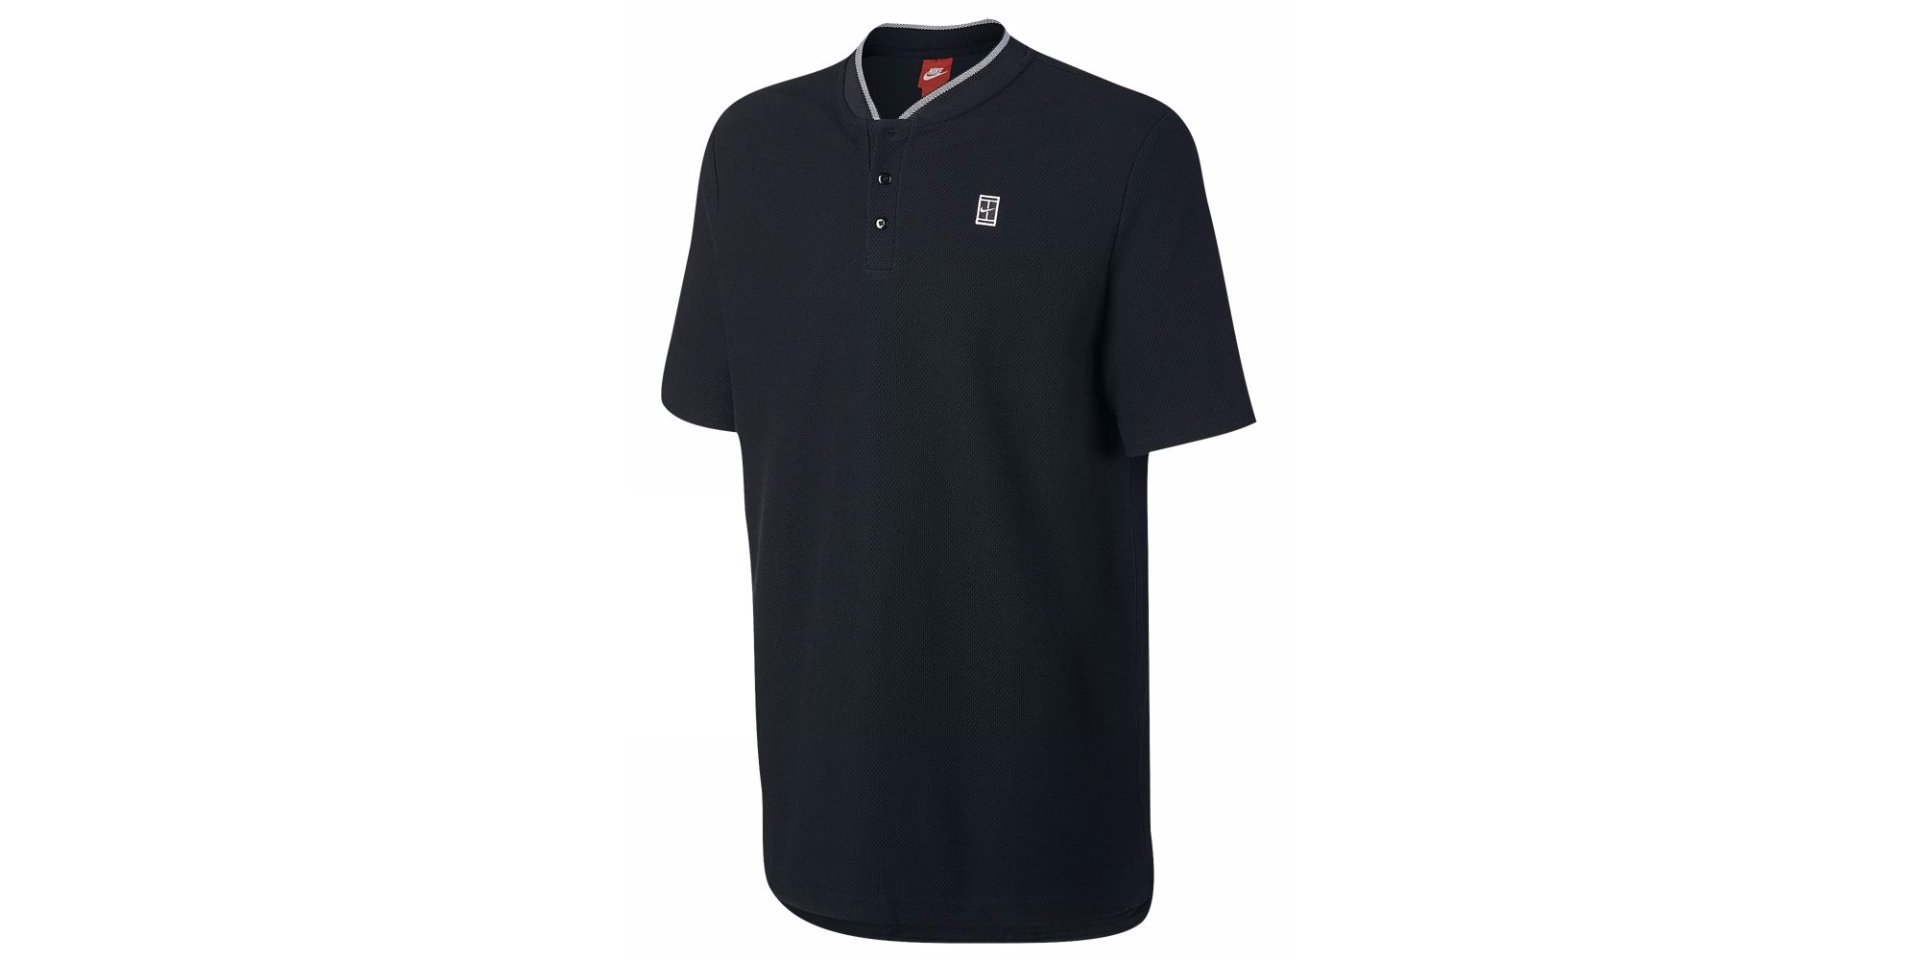 Nike Court Men's Tennis Cotton Polo Shirt Top, 830923-010,Black , Size XL